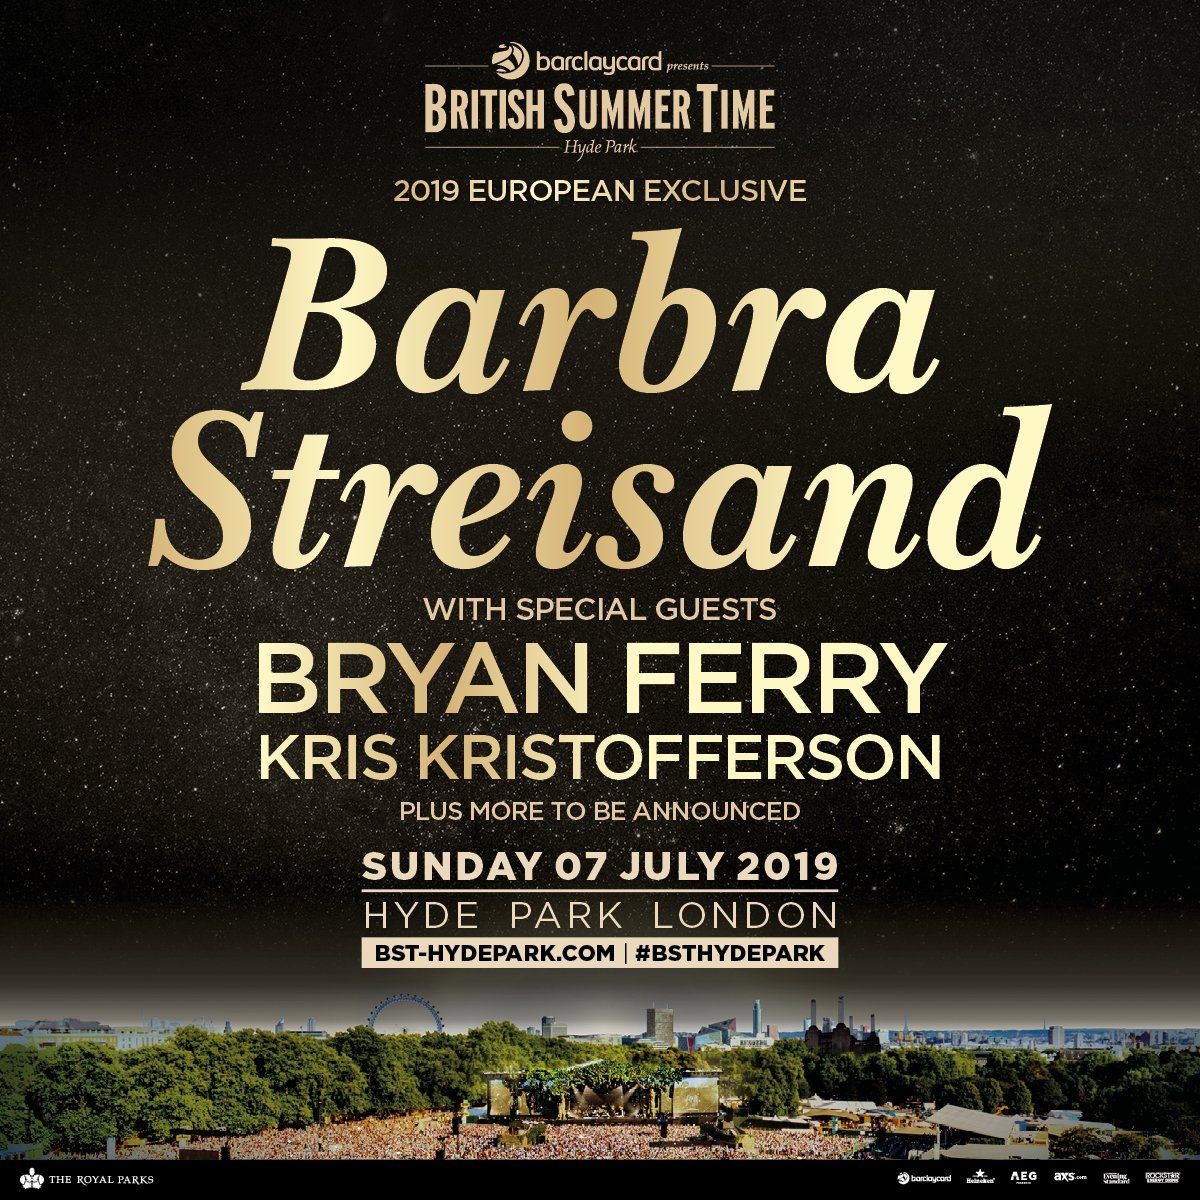 Thrilled to welcome @BryanFerry and Kris Kristofferson to my headline show at @BSTHydePark on Sunday 7th July! Tickets on sale now: https://po.st/BarbraBST